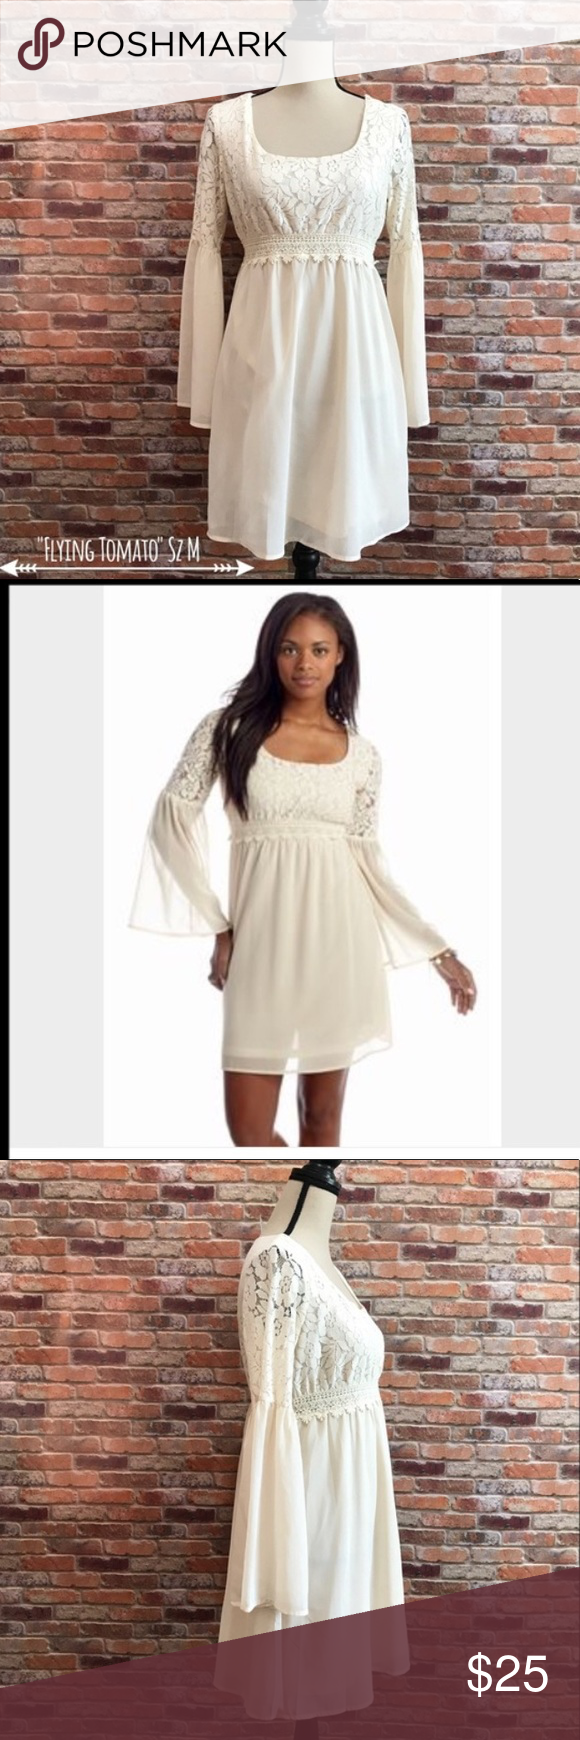 8fa8de758 Babydoll cream lace dress This boho chic flying tomato size medium dress is  perfect for a wedding